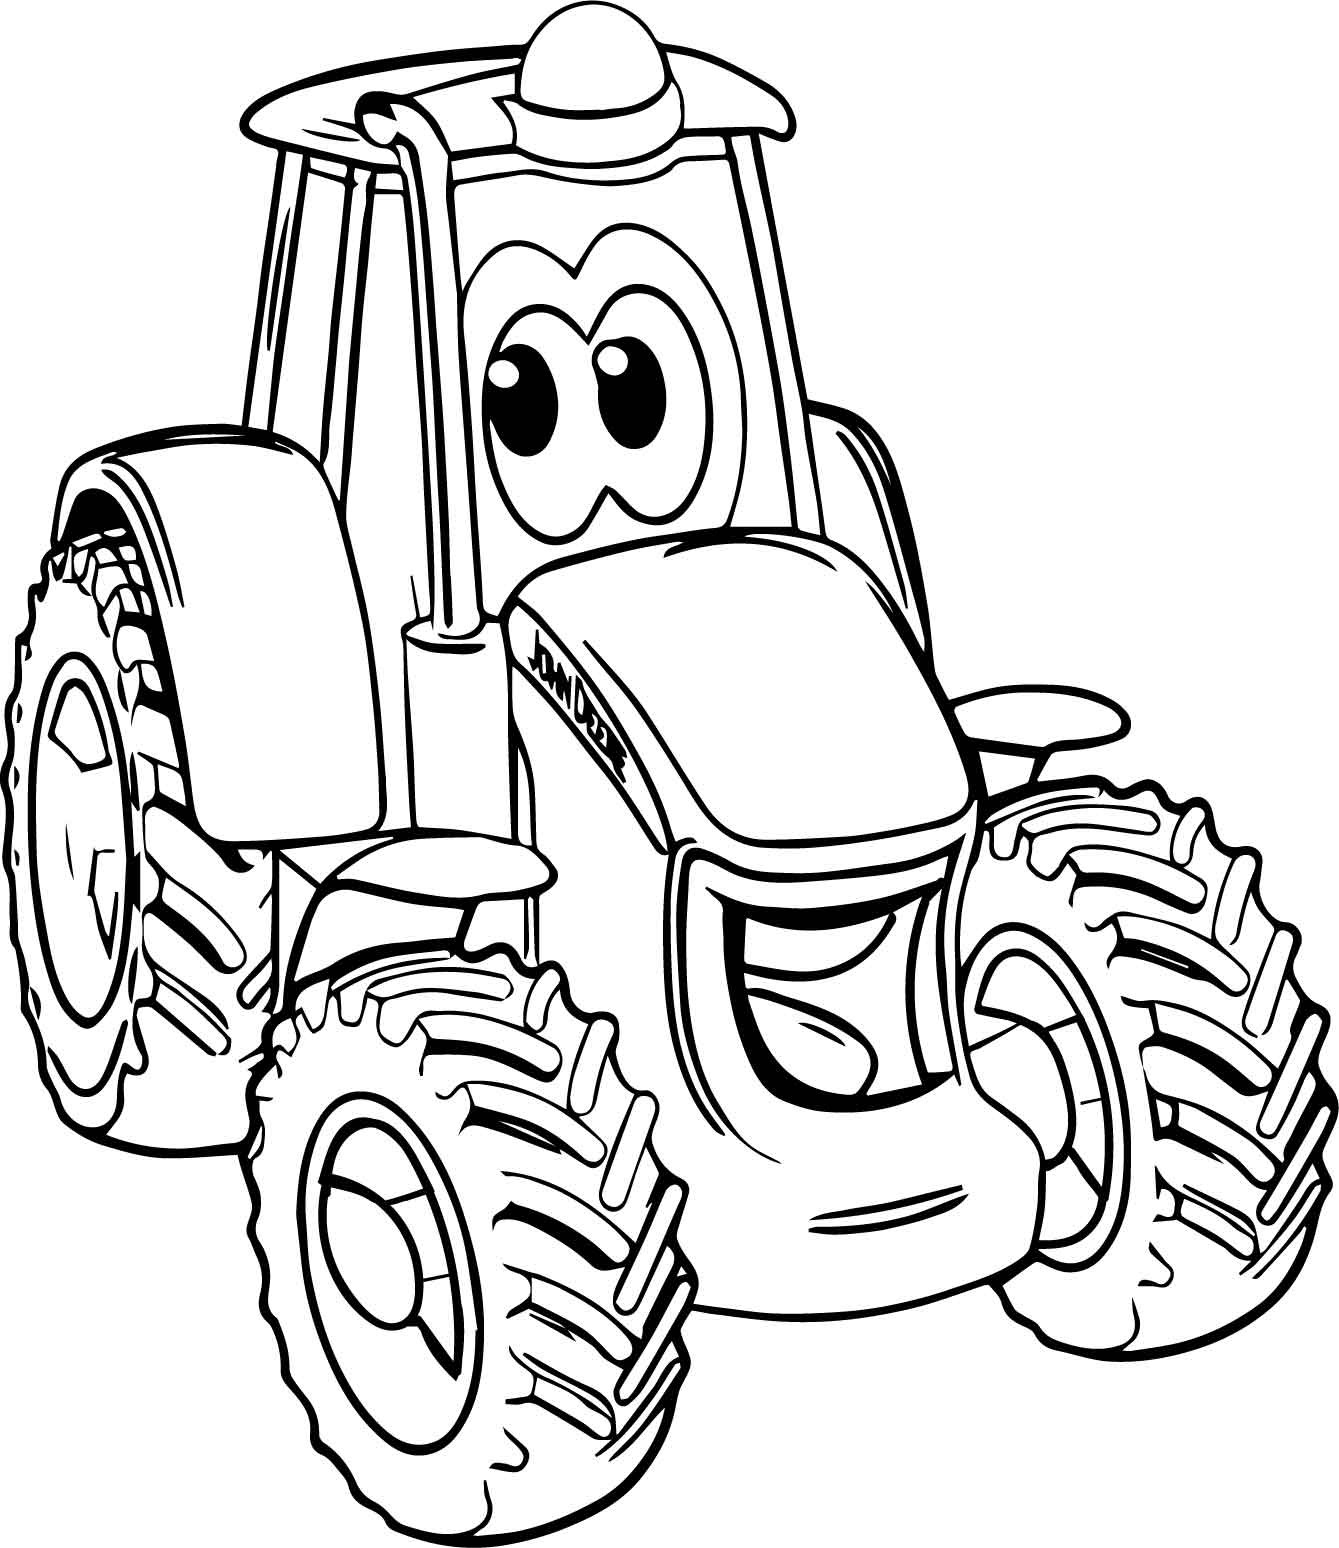 printable pictures of tractors johnny tractor free coloring pages coloring pages for kids of printable pictures tractors